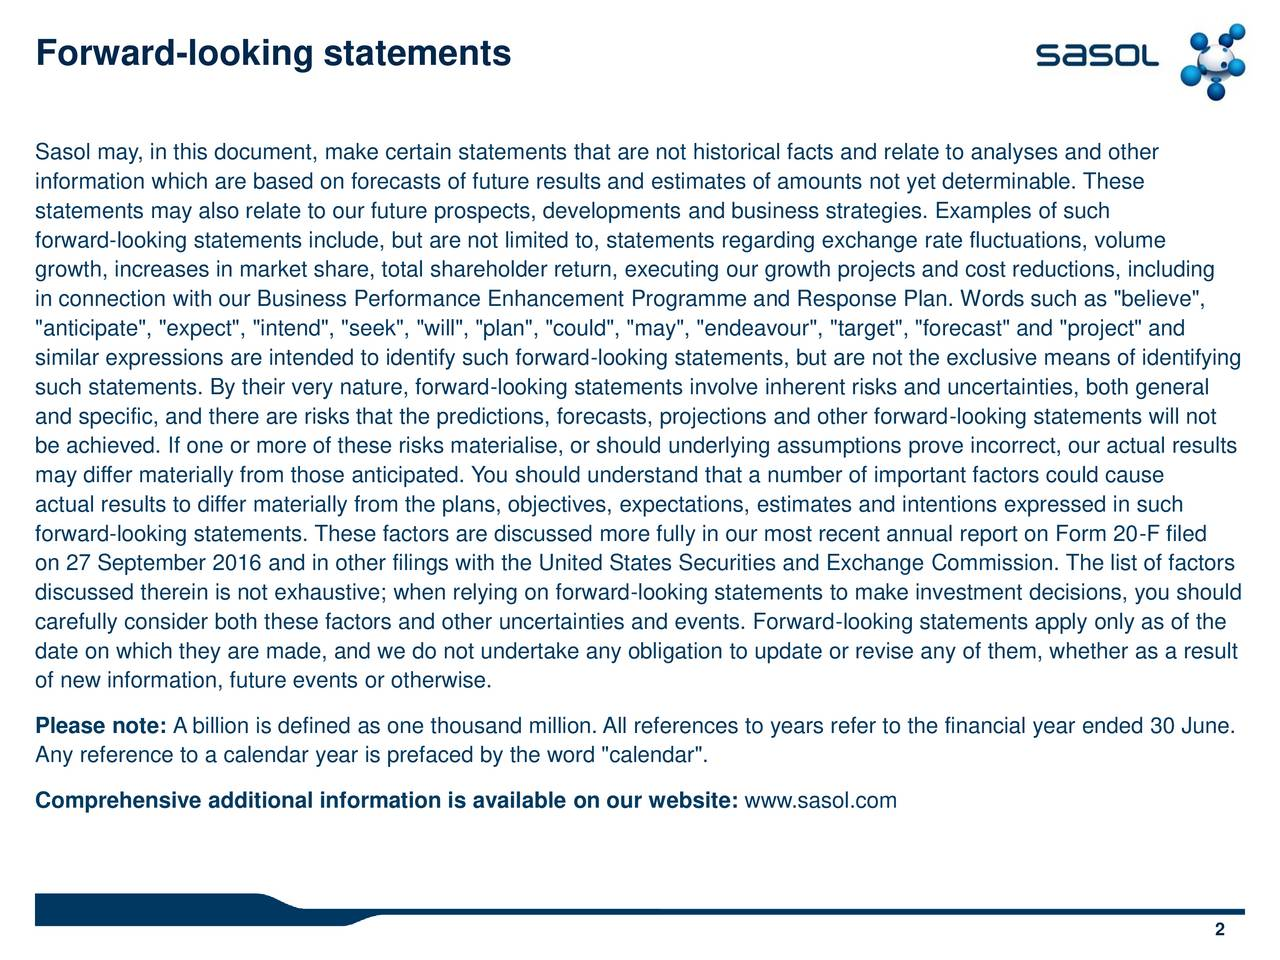 "Sasol may, in this document, make certain statements that are not historical facts and relate to analyses and other information which are based on forecasts of future results and estimates of amounts not yet determinable. These statements may also relate to our future prospects, developments and business strategies. Examples of such forward-looking statements include, but are not limited to, statements regarding exchange rate fluctuations, volume growth, increases in market share, total shareholder return, executing our growth projects and cost reductions, including in connection with our Business Performance Enhancement Programme and Response Plan. Words such as ""believe"", ""anticipate"", ""expect"", ""intend"", ""seek"", ""will"", ""plan"", ""could"", ""may"", ""endeavour"", ""target"", ""forecast"" and ""project"" and similar expressions are intended to identify such forward-looking statements, but are not the exclusive means of identifying such statements. By their very nature, forward-looking statements involve inherent risks and uncertainties, both general and specific, and there are risks that the predictions, forecasts, projections and other forward-looking statements will not be achieved. If one or more of these risks materialise, or should underlying assumptions prove incorrect, our actual results may differ materially from those anticipated. You should understand that a number of important factors could cause actual results to differ materially from the plans, objectives, expectations, estimates and intentions expressed in such forward-looking statements. These factors are discussed more fully in our most recent annual report on Form 20-F filed on 27 September 2016 and in other filings with the United States Securities and Exchange Commission. The list of factors discussed therein is not exhaustive; when relying on forward-looking statements to make investment decisions, you should carefully consider both these factors and other uncertainties and events. Forward-looking statements apply only as of the date on which they are made, and we do not undertake any obligation to update or revise any of them, whether as a result of new information, future events or otherwise. Please note: A billion is defined as one thousand million. All references to years refer to the financial year ended 30 June. Any reference to a calendar year is prefaced by the word ""calendar"". Comprehensive additional information is available on our website: www.sasol.com 2"